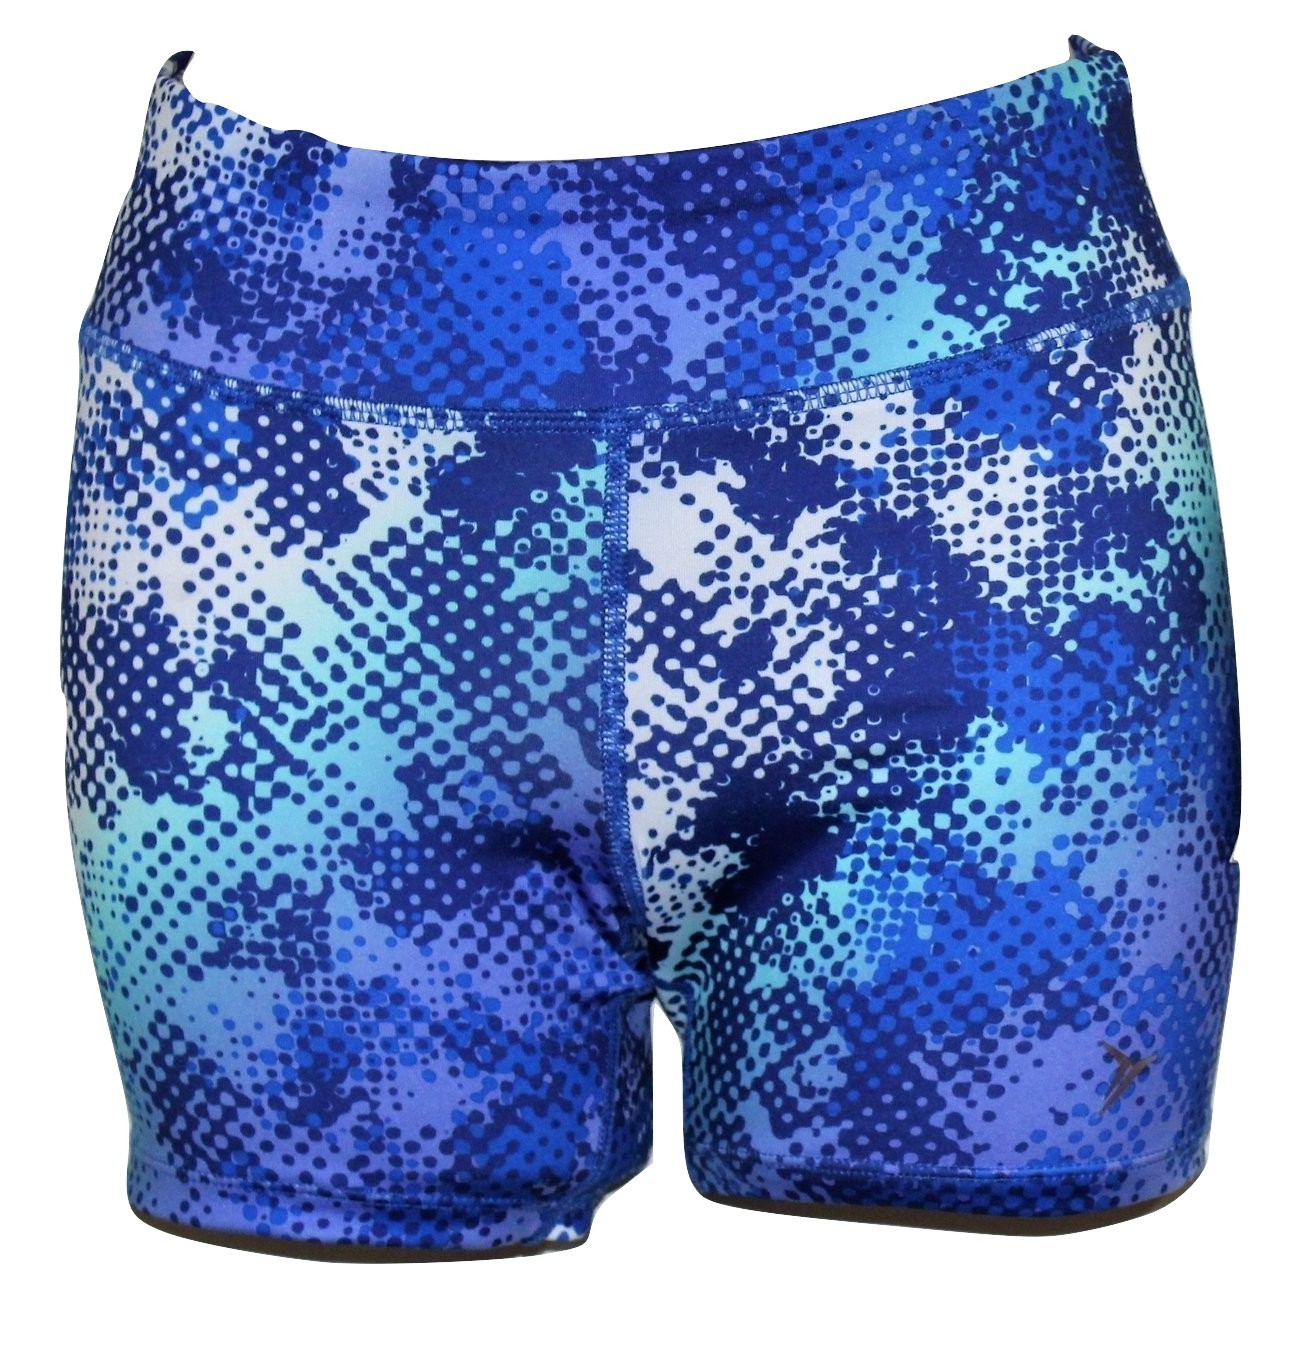 Old navy active fitted performance shorts